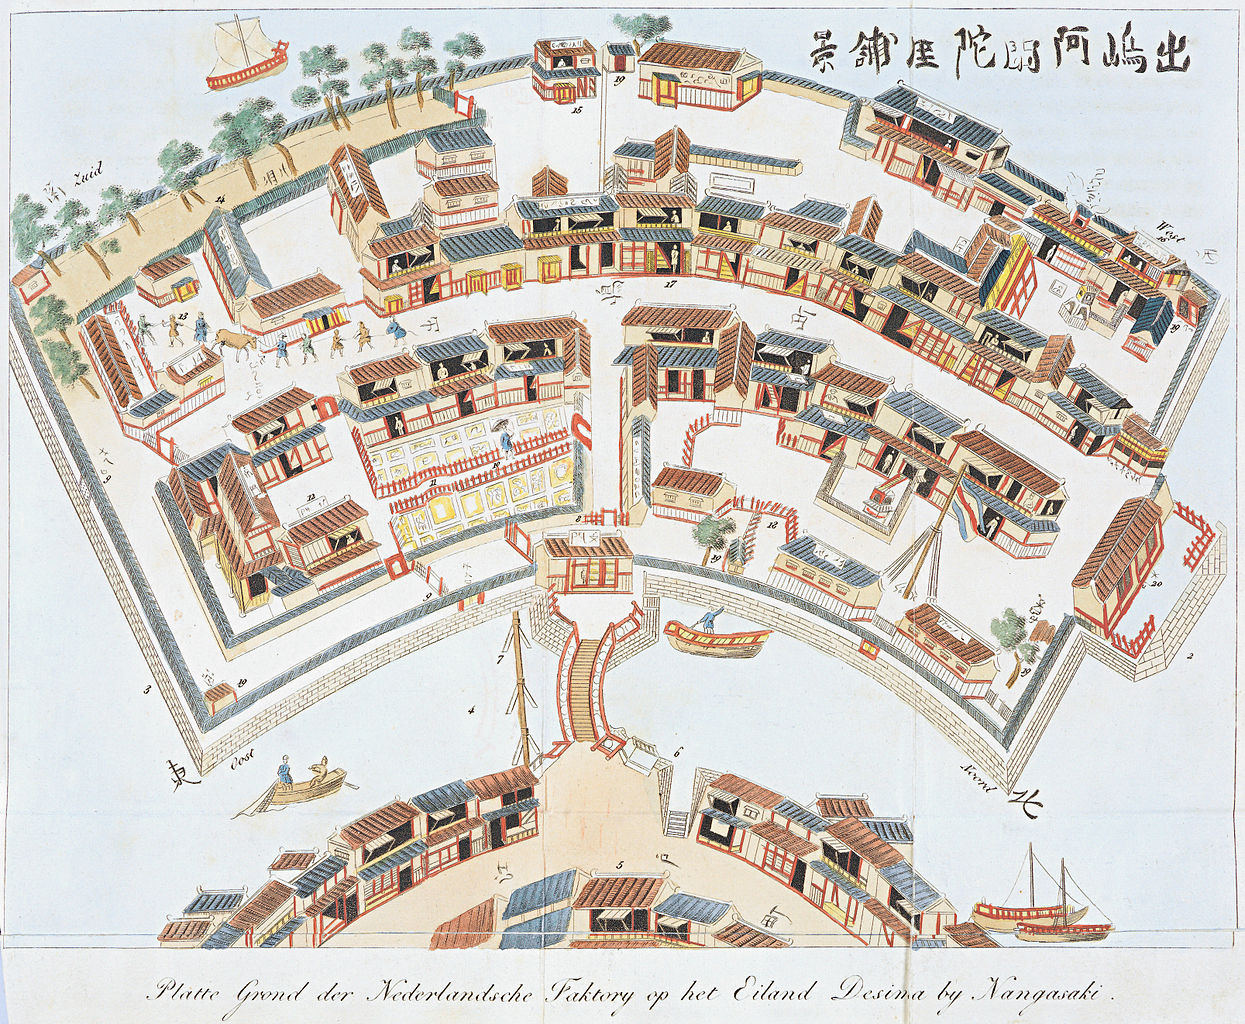 An imagined bird's-eye view of Dejima's layout and structures (copied from a woodblock print by Toshimaya Bunjiemon of 1780